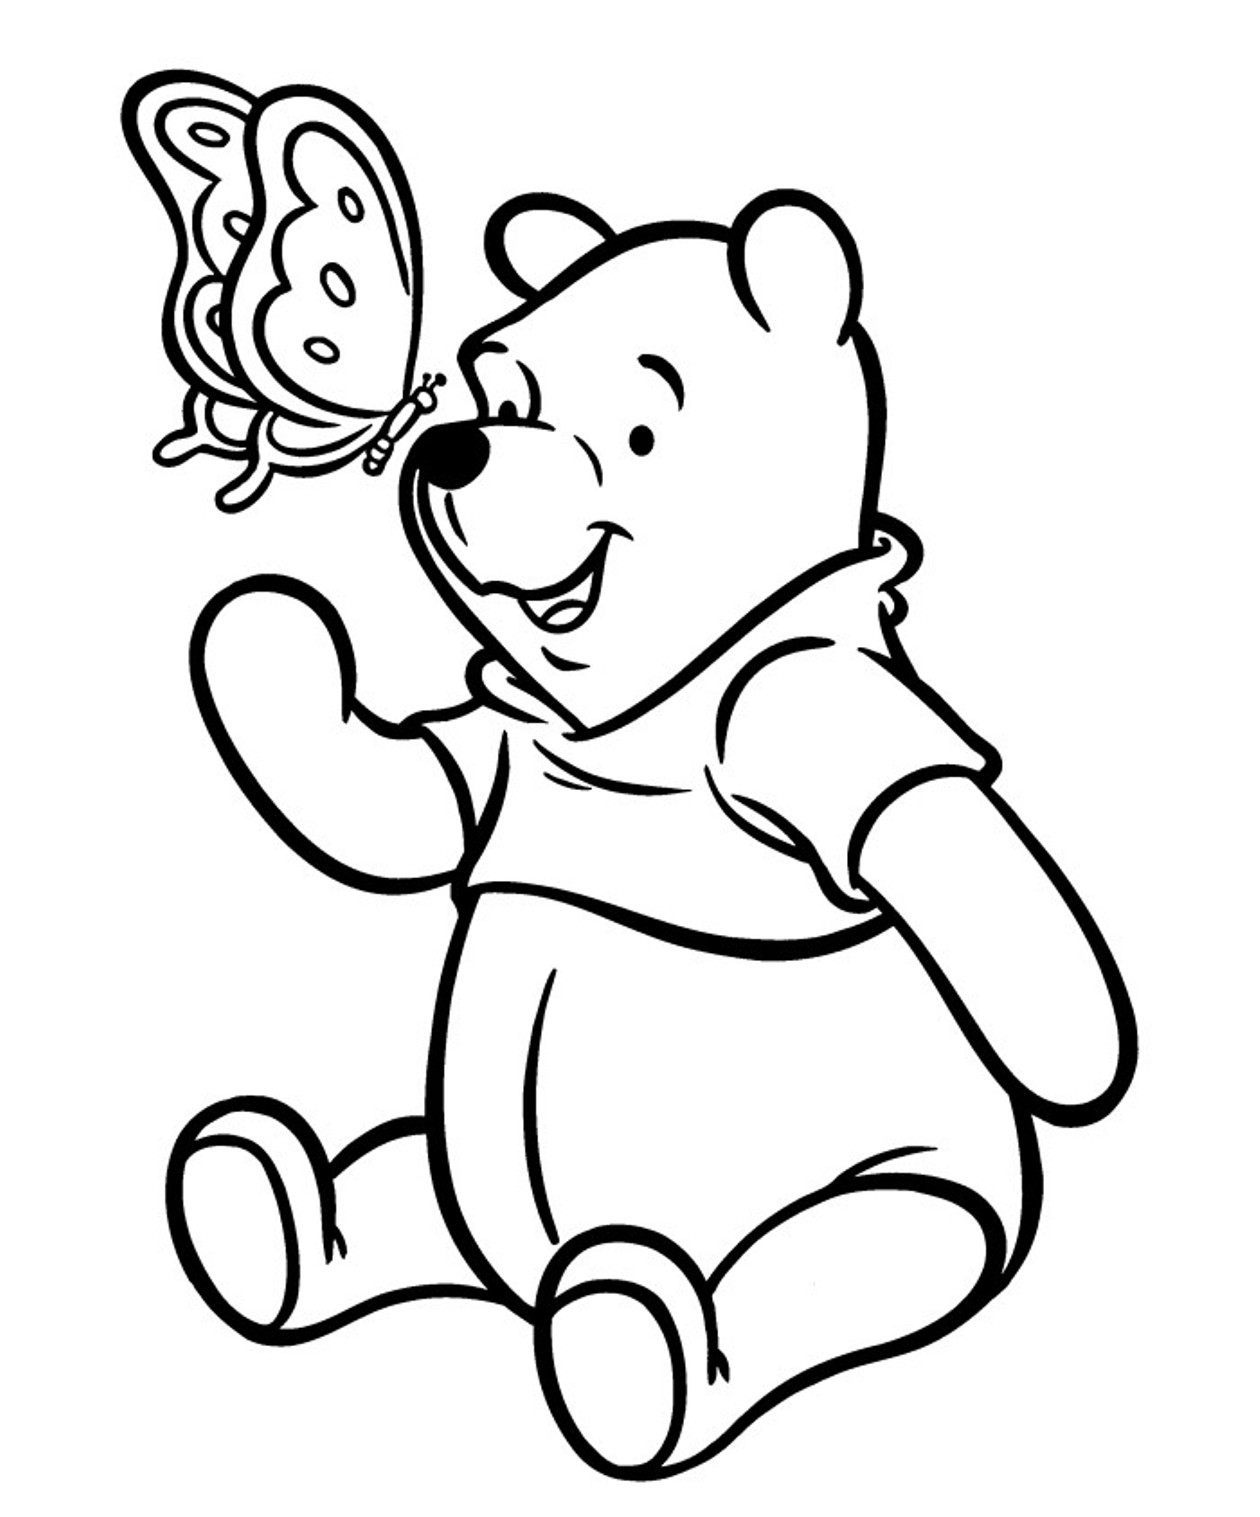 pooh bear coloring pages pooh bear coloring pages to download and print for free pages pooh coloring bear